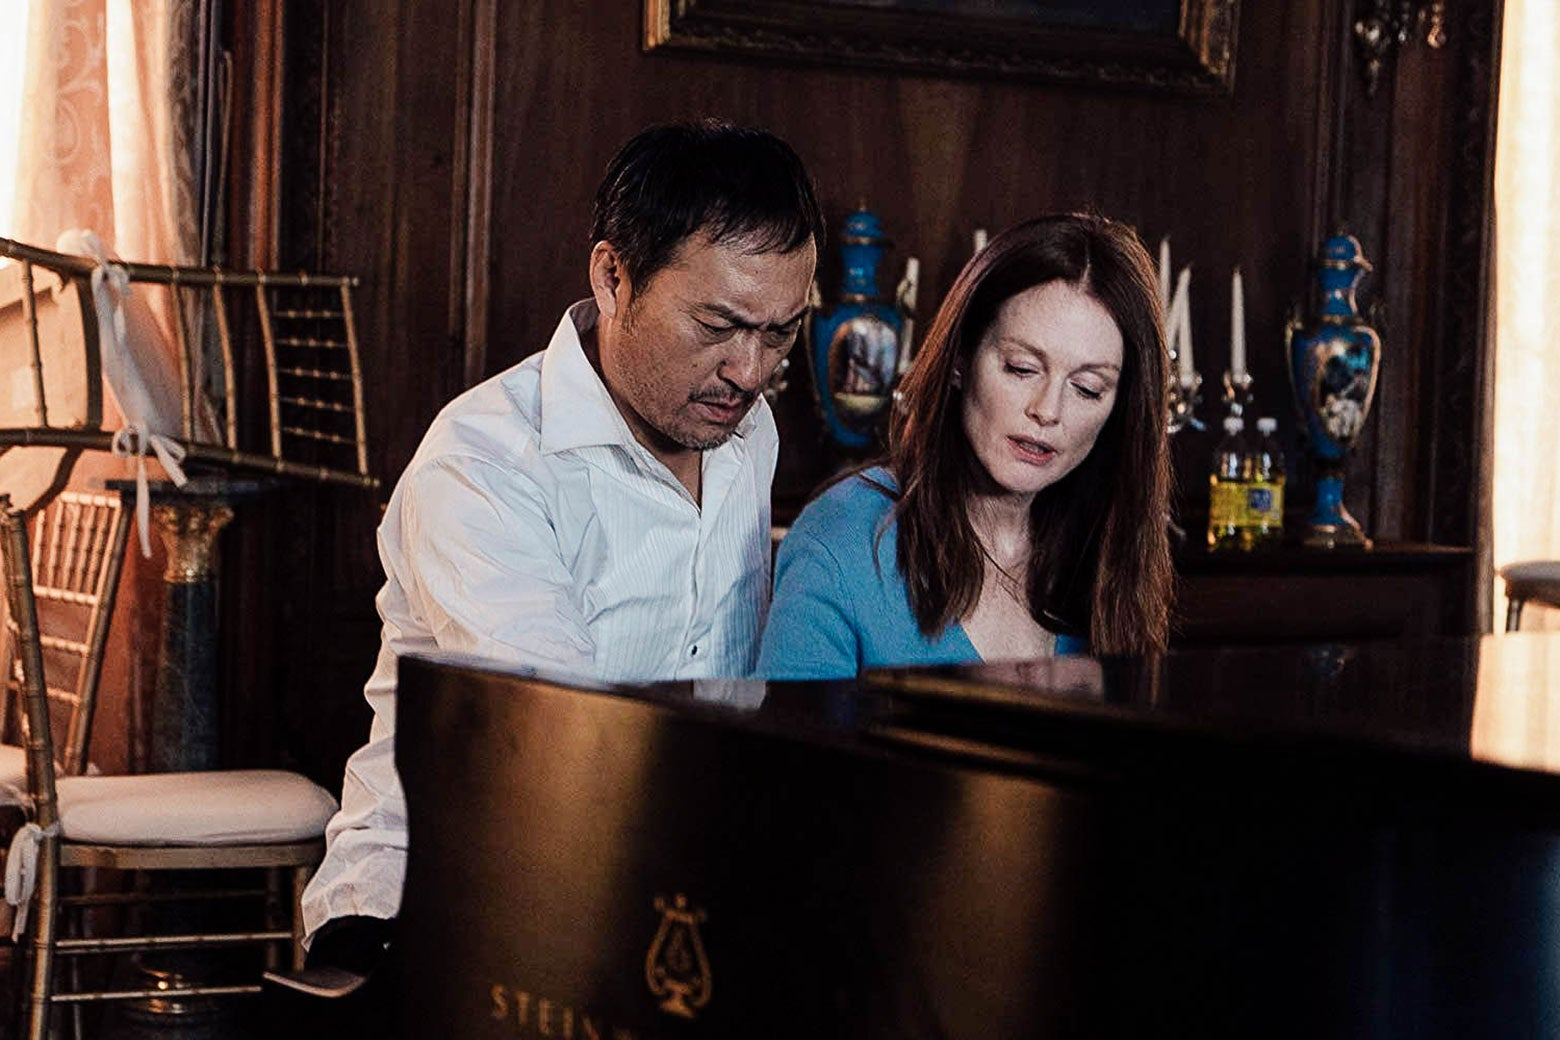 In a scene from Bel Canto, Katsumi Hosokawa, played by Ken Watanabe, and Roxane Coss, played by Julianne Moore, sit at the piano in a richly decorated parlor. Chairs are piled against the window on the left.